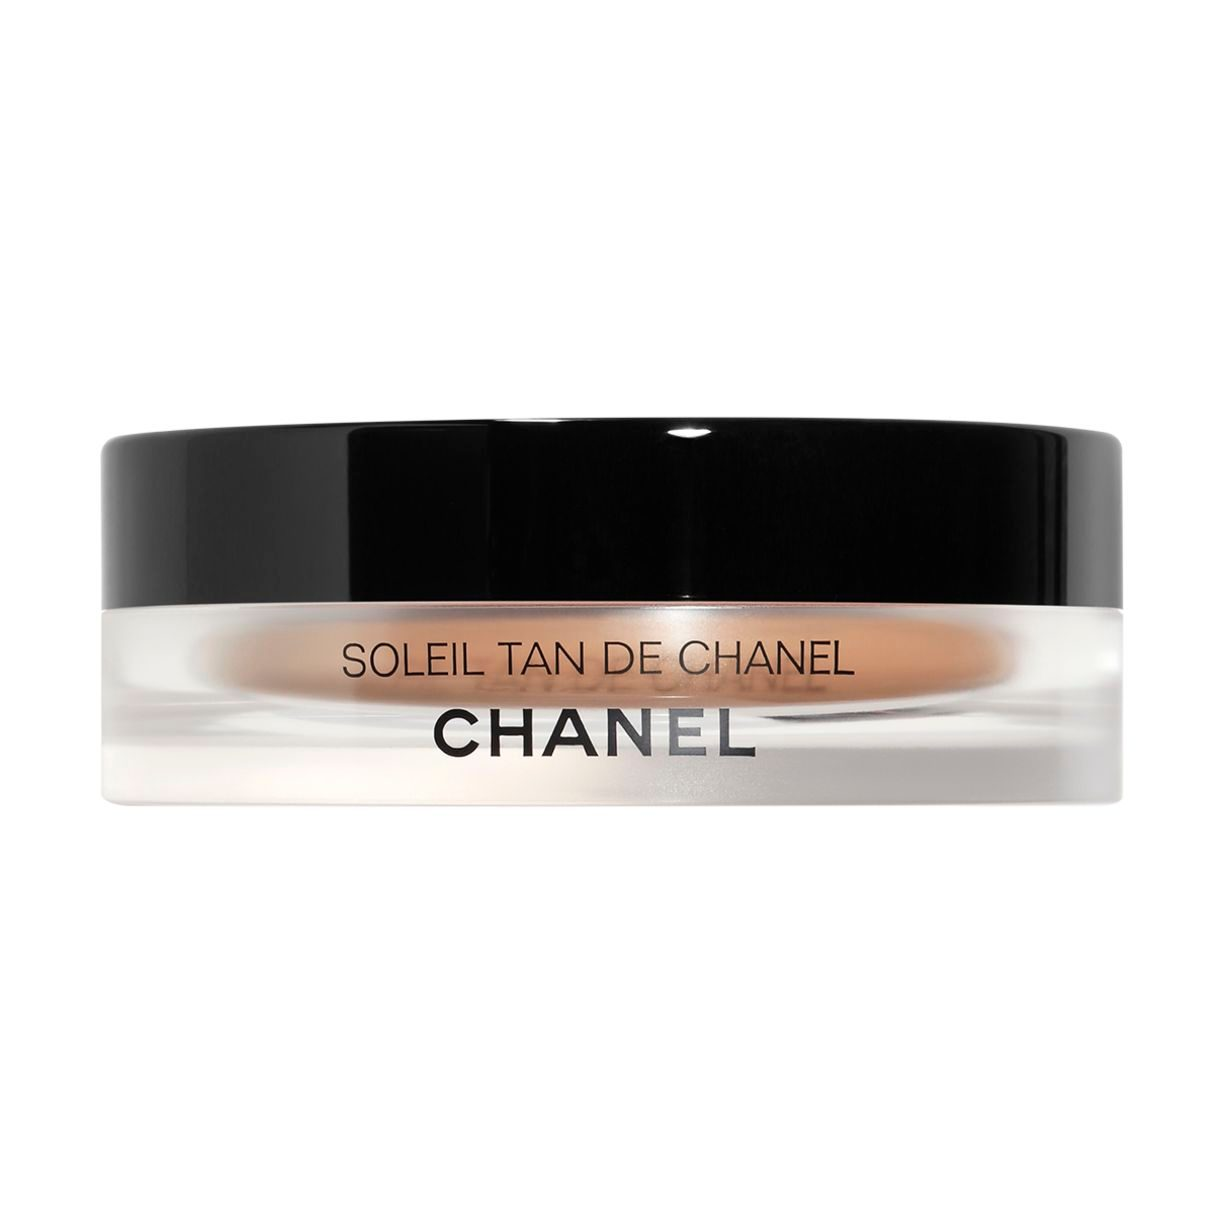 SOLEIL TAN DE CHANEL BRONZING MAKEUP BASE 30g